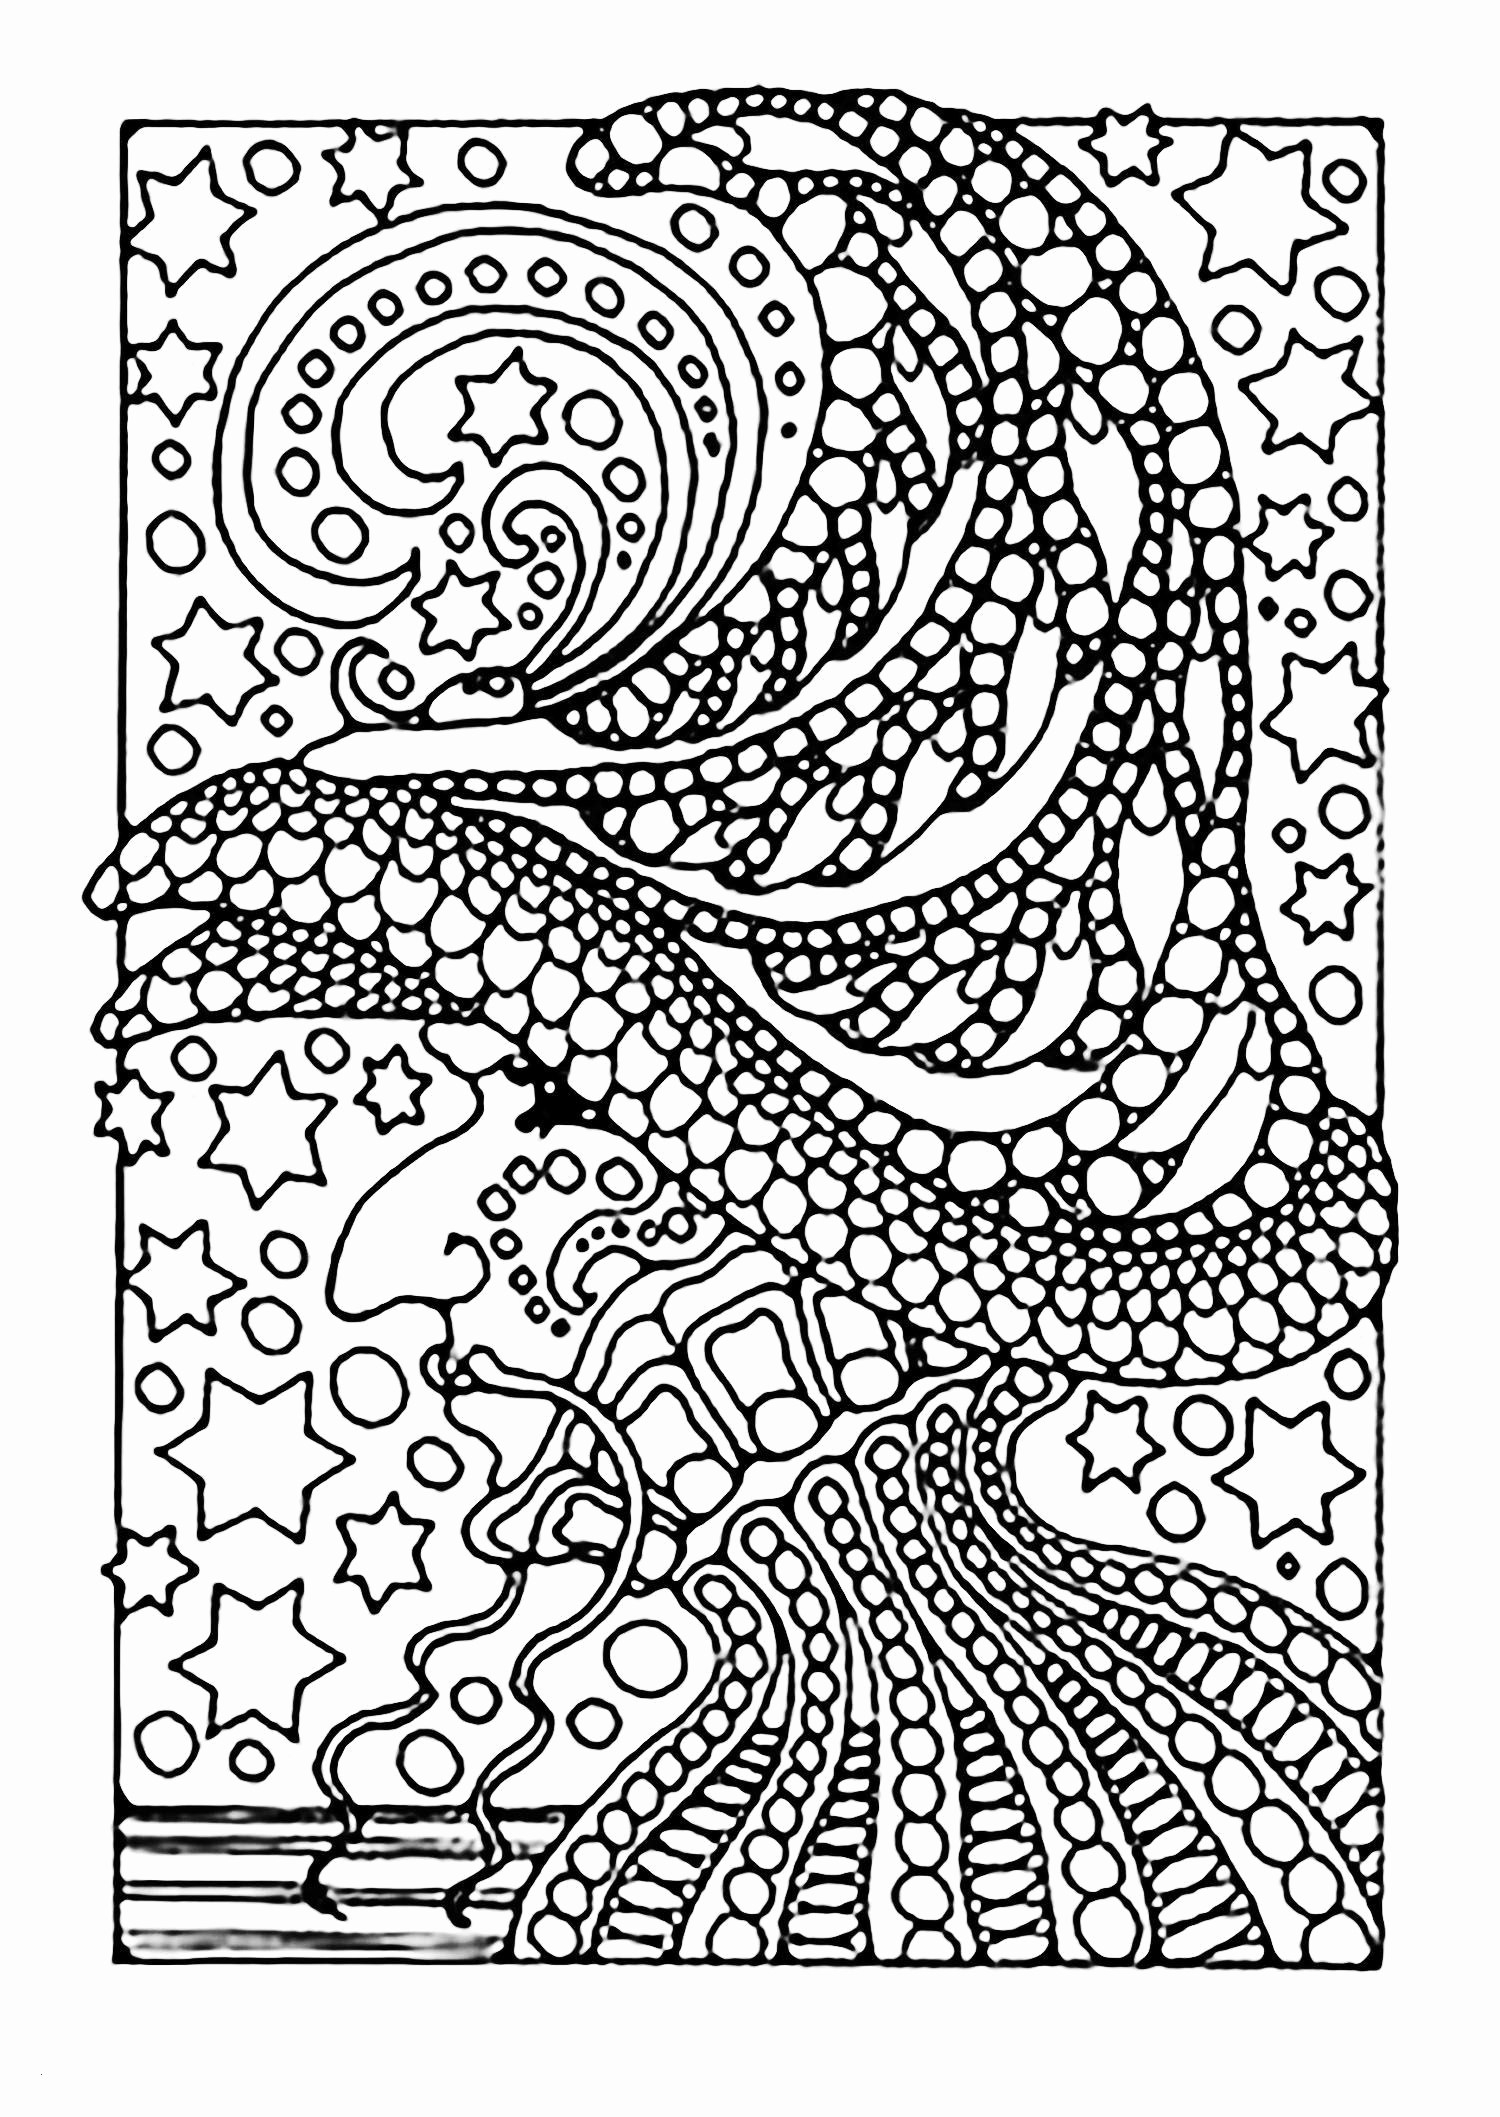 free printable skull coloring pages Collection-Free Printable Sugar Skull Coloring Pages 9-b